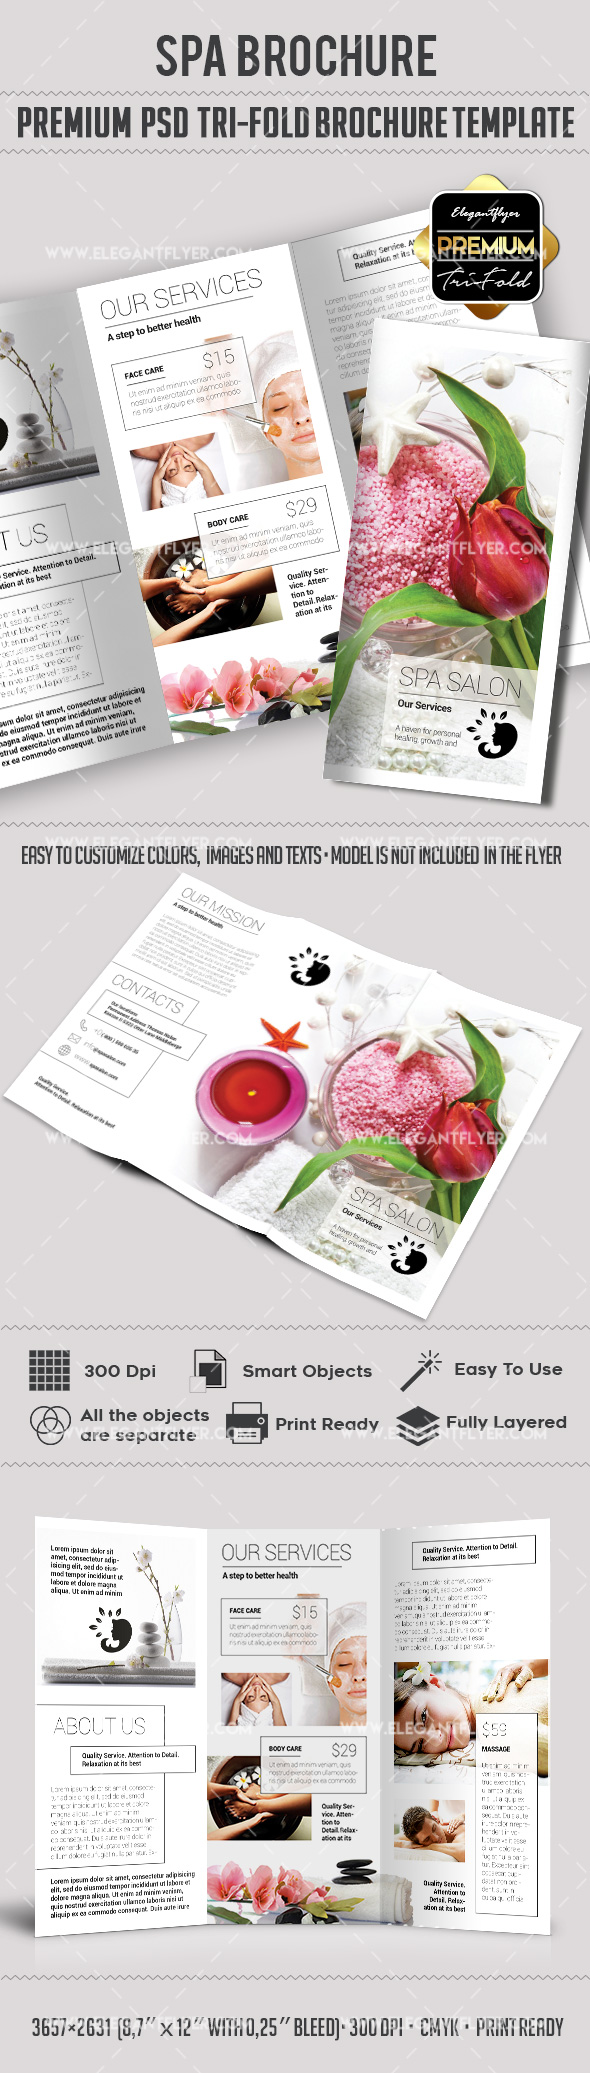 2 fold brochure template psd tri fold brochure for spa salon template by elegantflyer